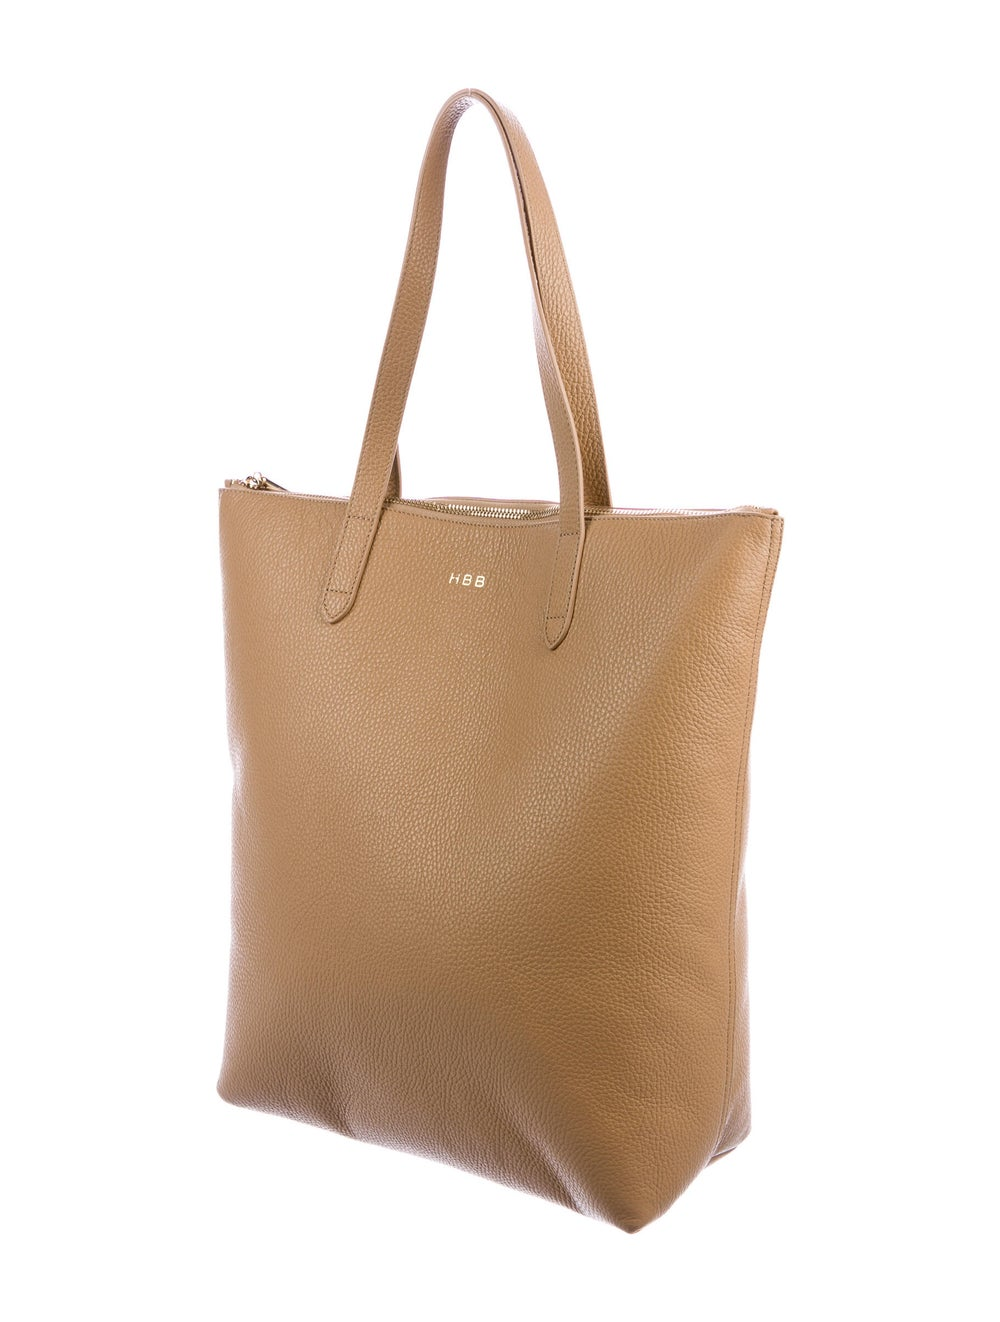 Cuyana Large Leather Tote Brown - image 3